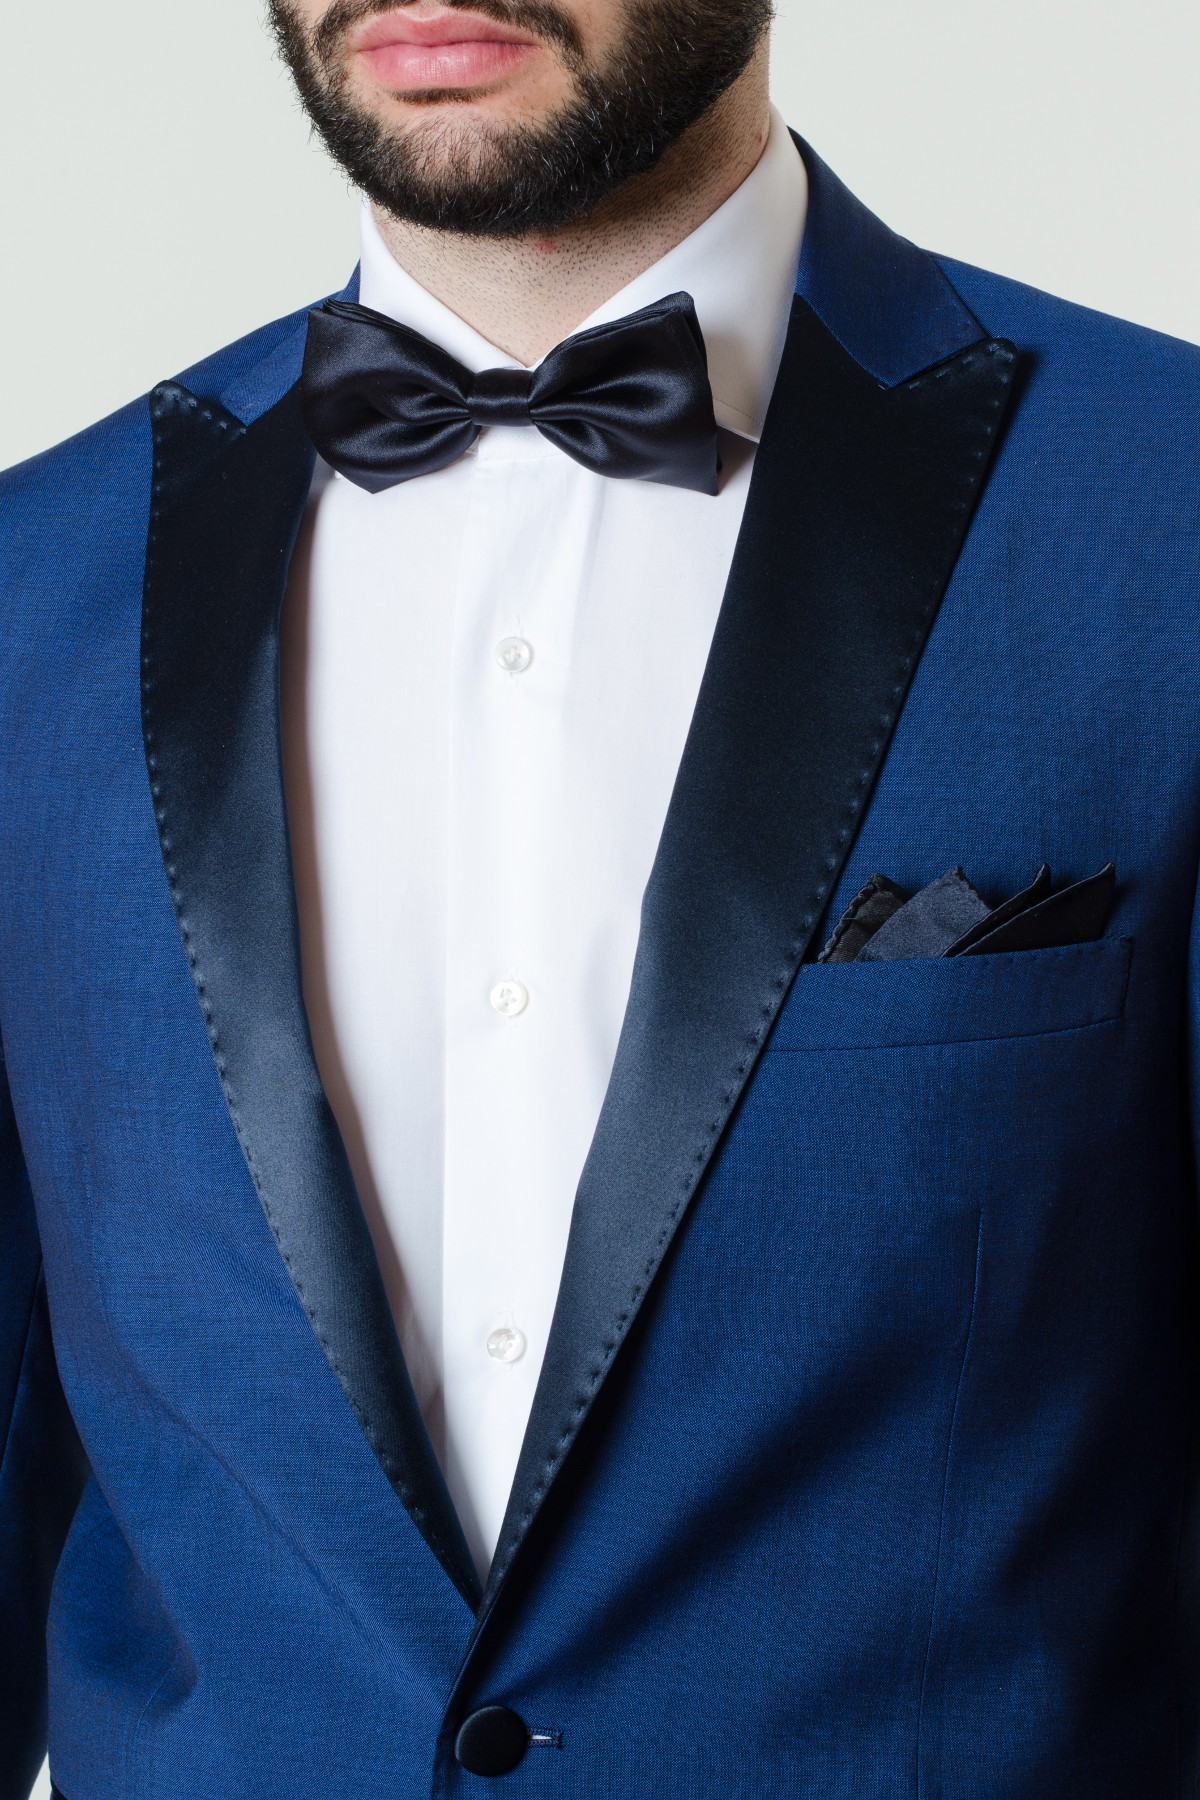 Suit for man RIONE FONTANA S/S